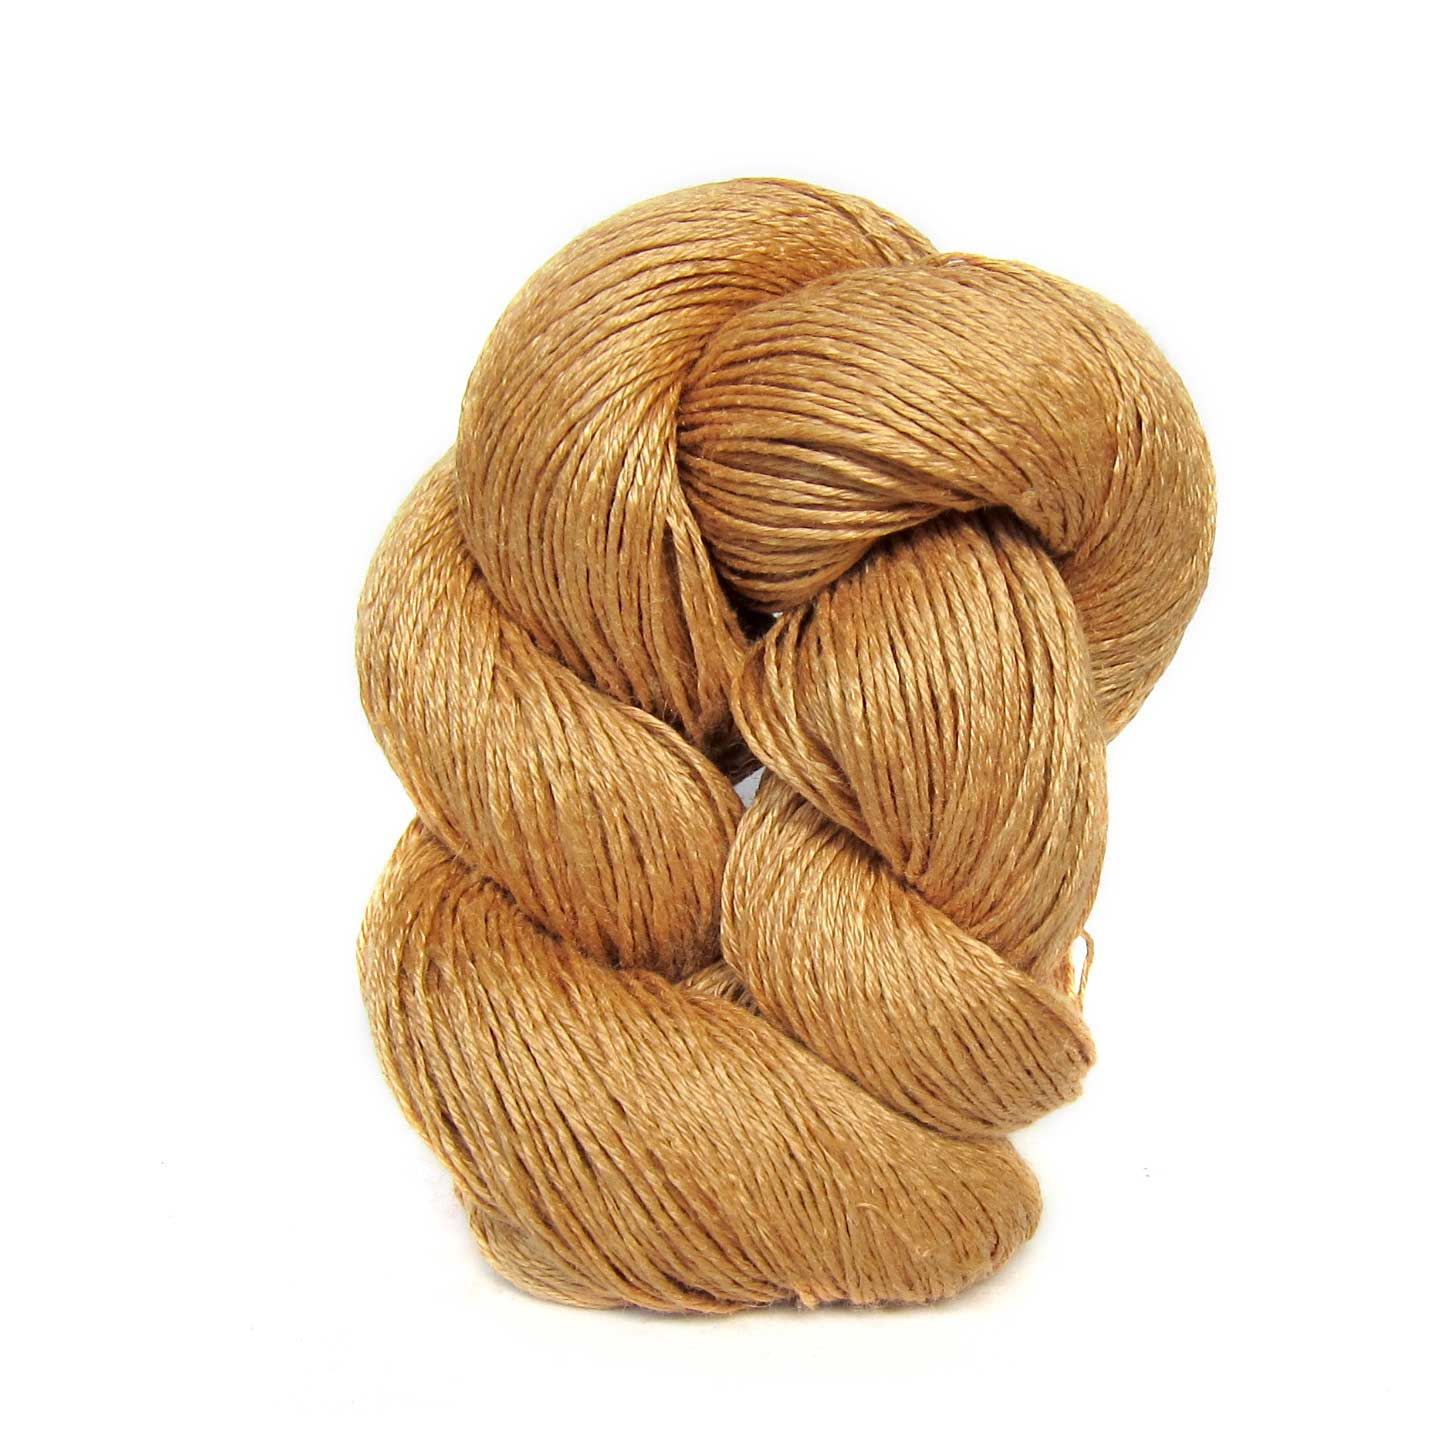 Euroflax 100% Linen Yarn: finest linen yarn available! Soft hand